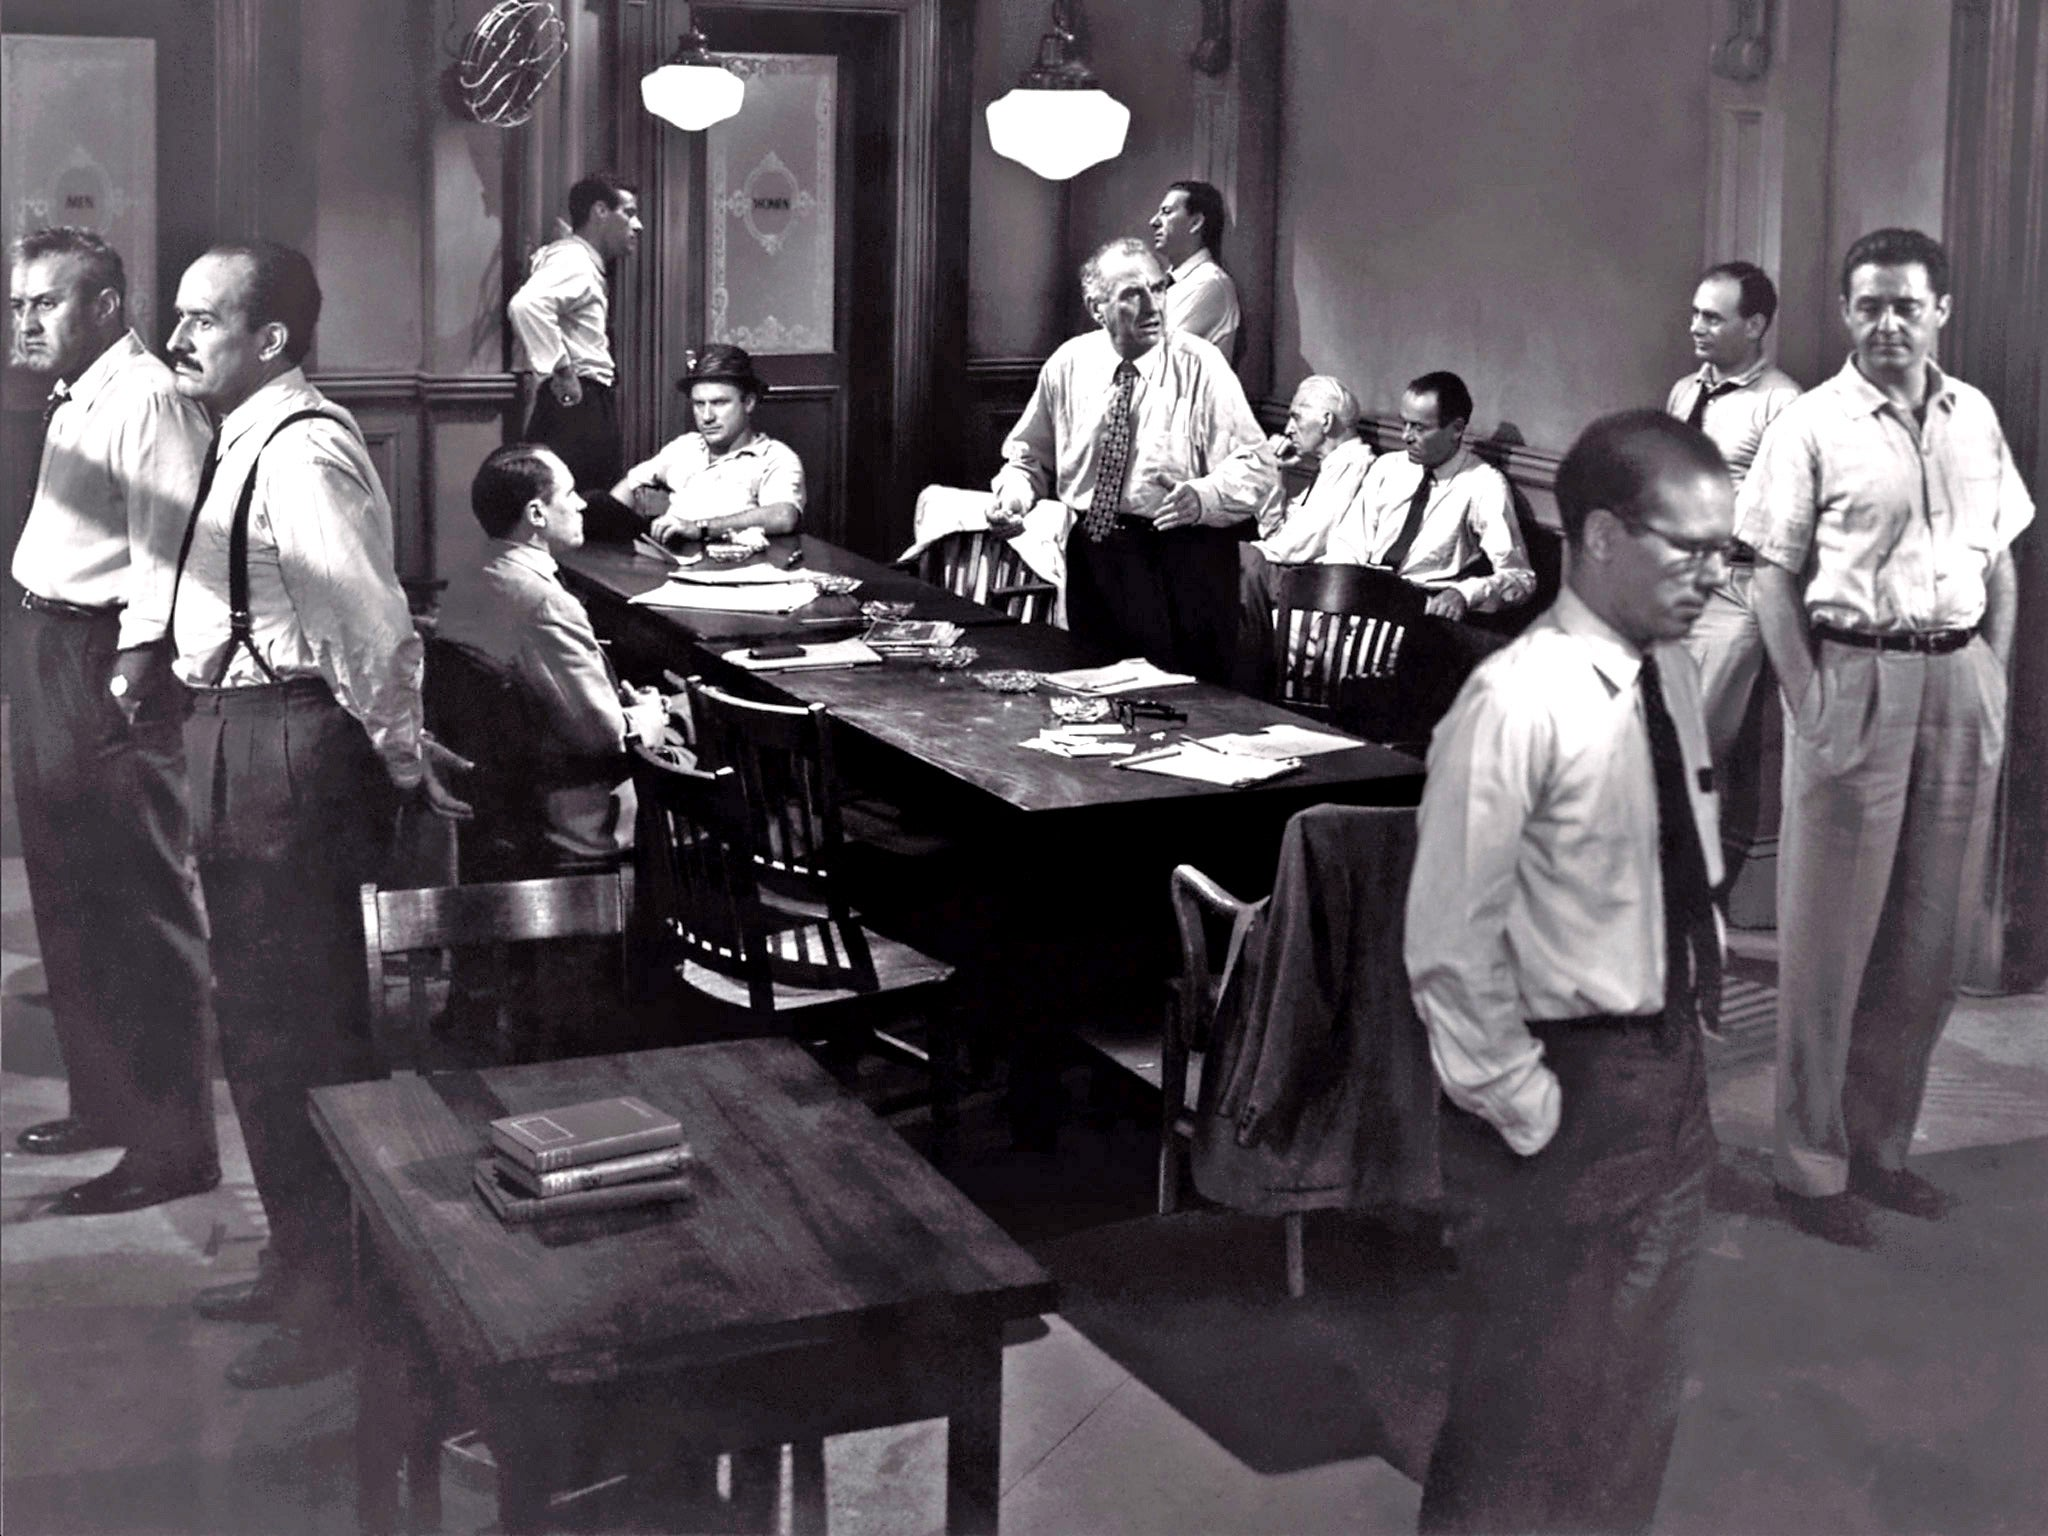 12 Angry Men movie scene